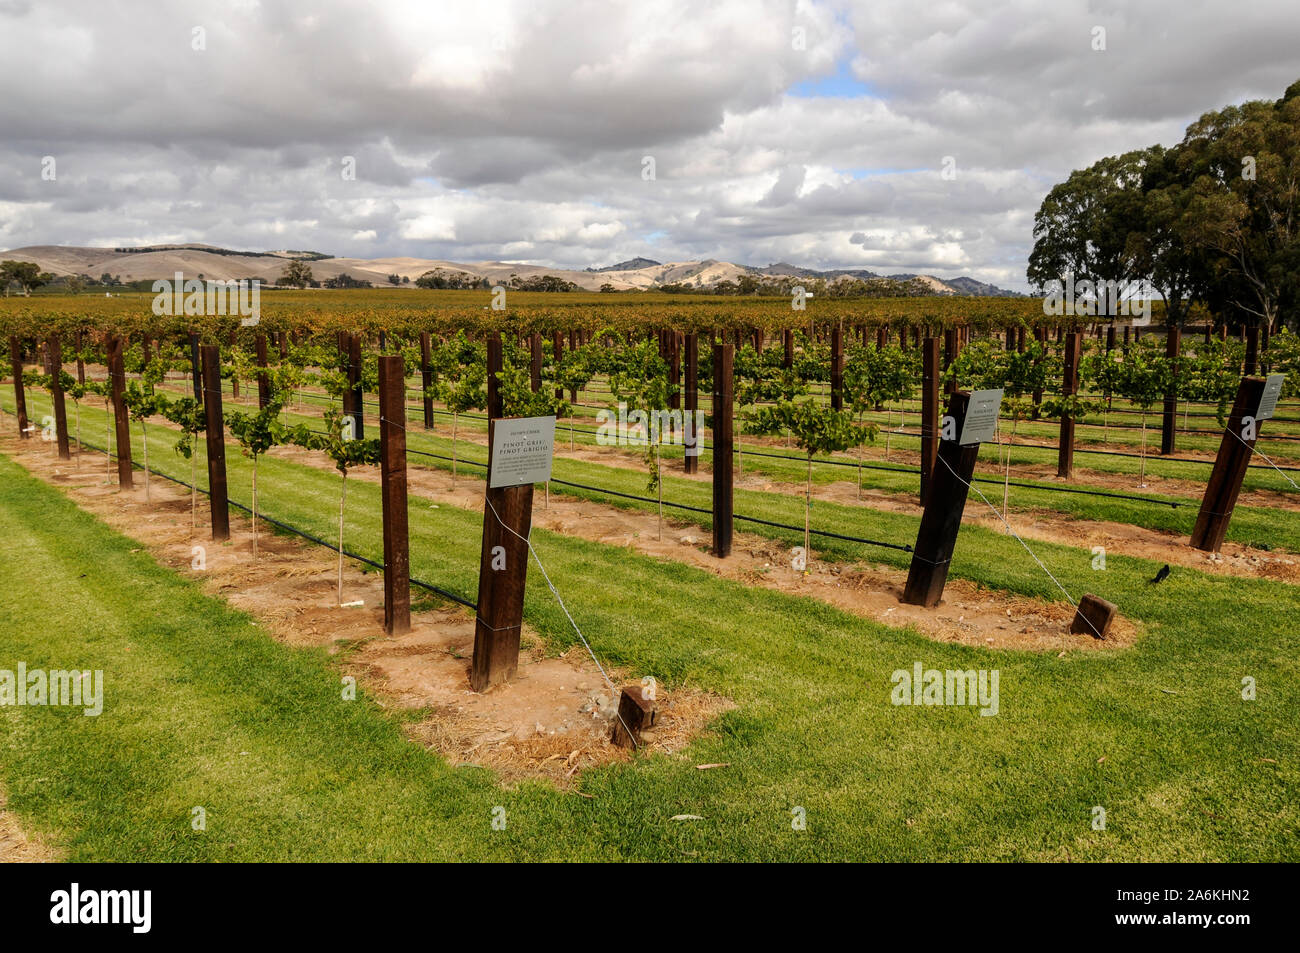 A selected area with cut grass for the benefit  of visitors is Jacobs Creek in the  Barossa Valley  wine growing region near Adelaide, Australia. Stock Photo